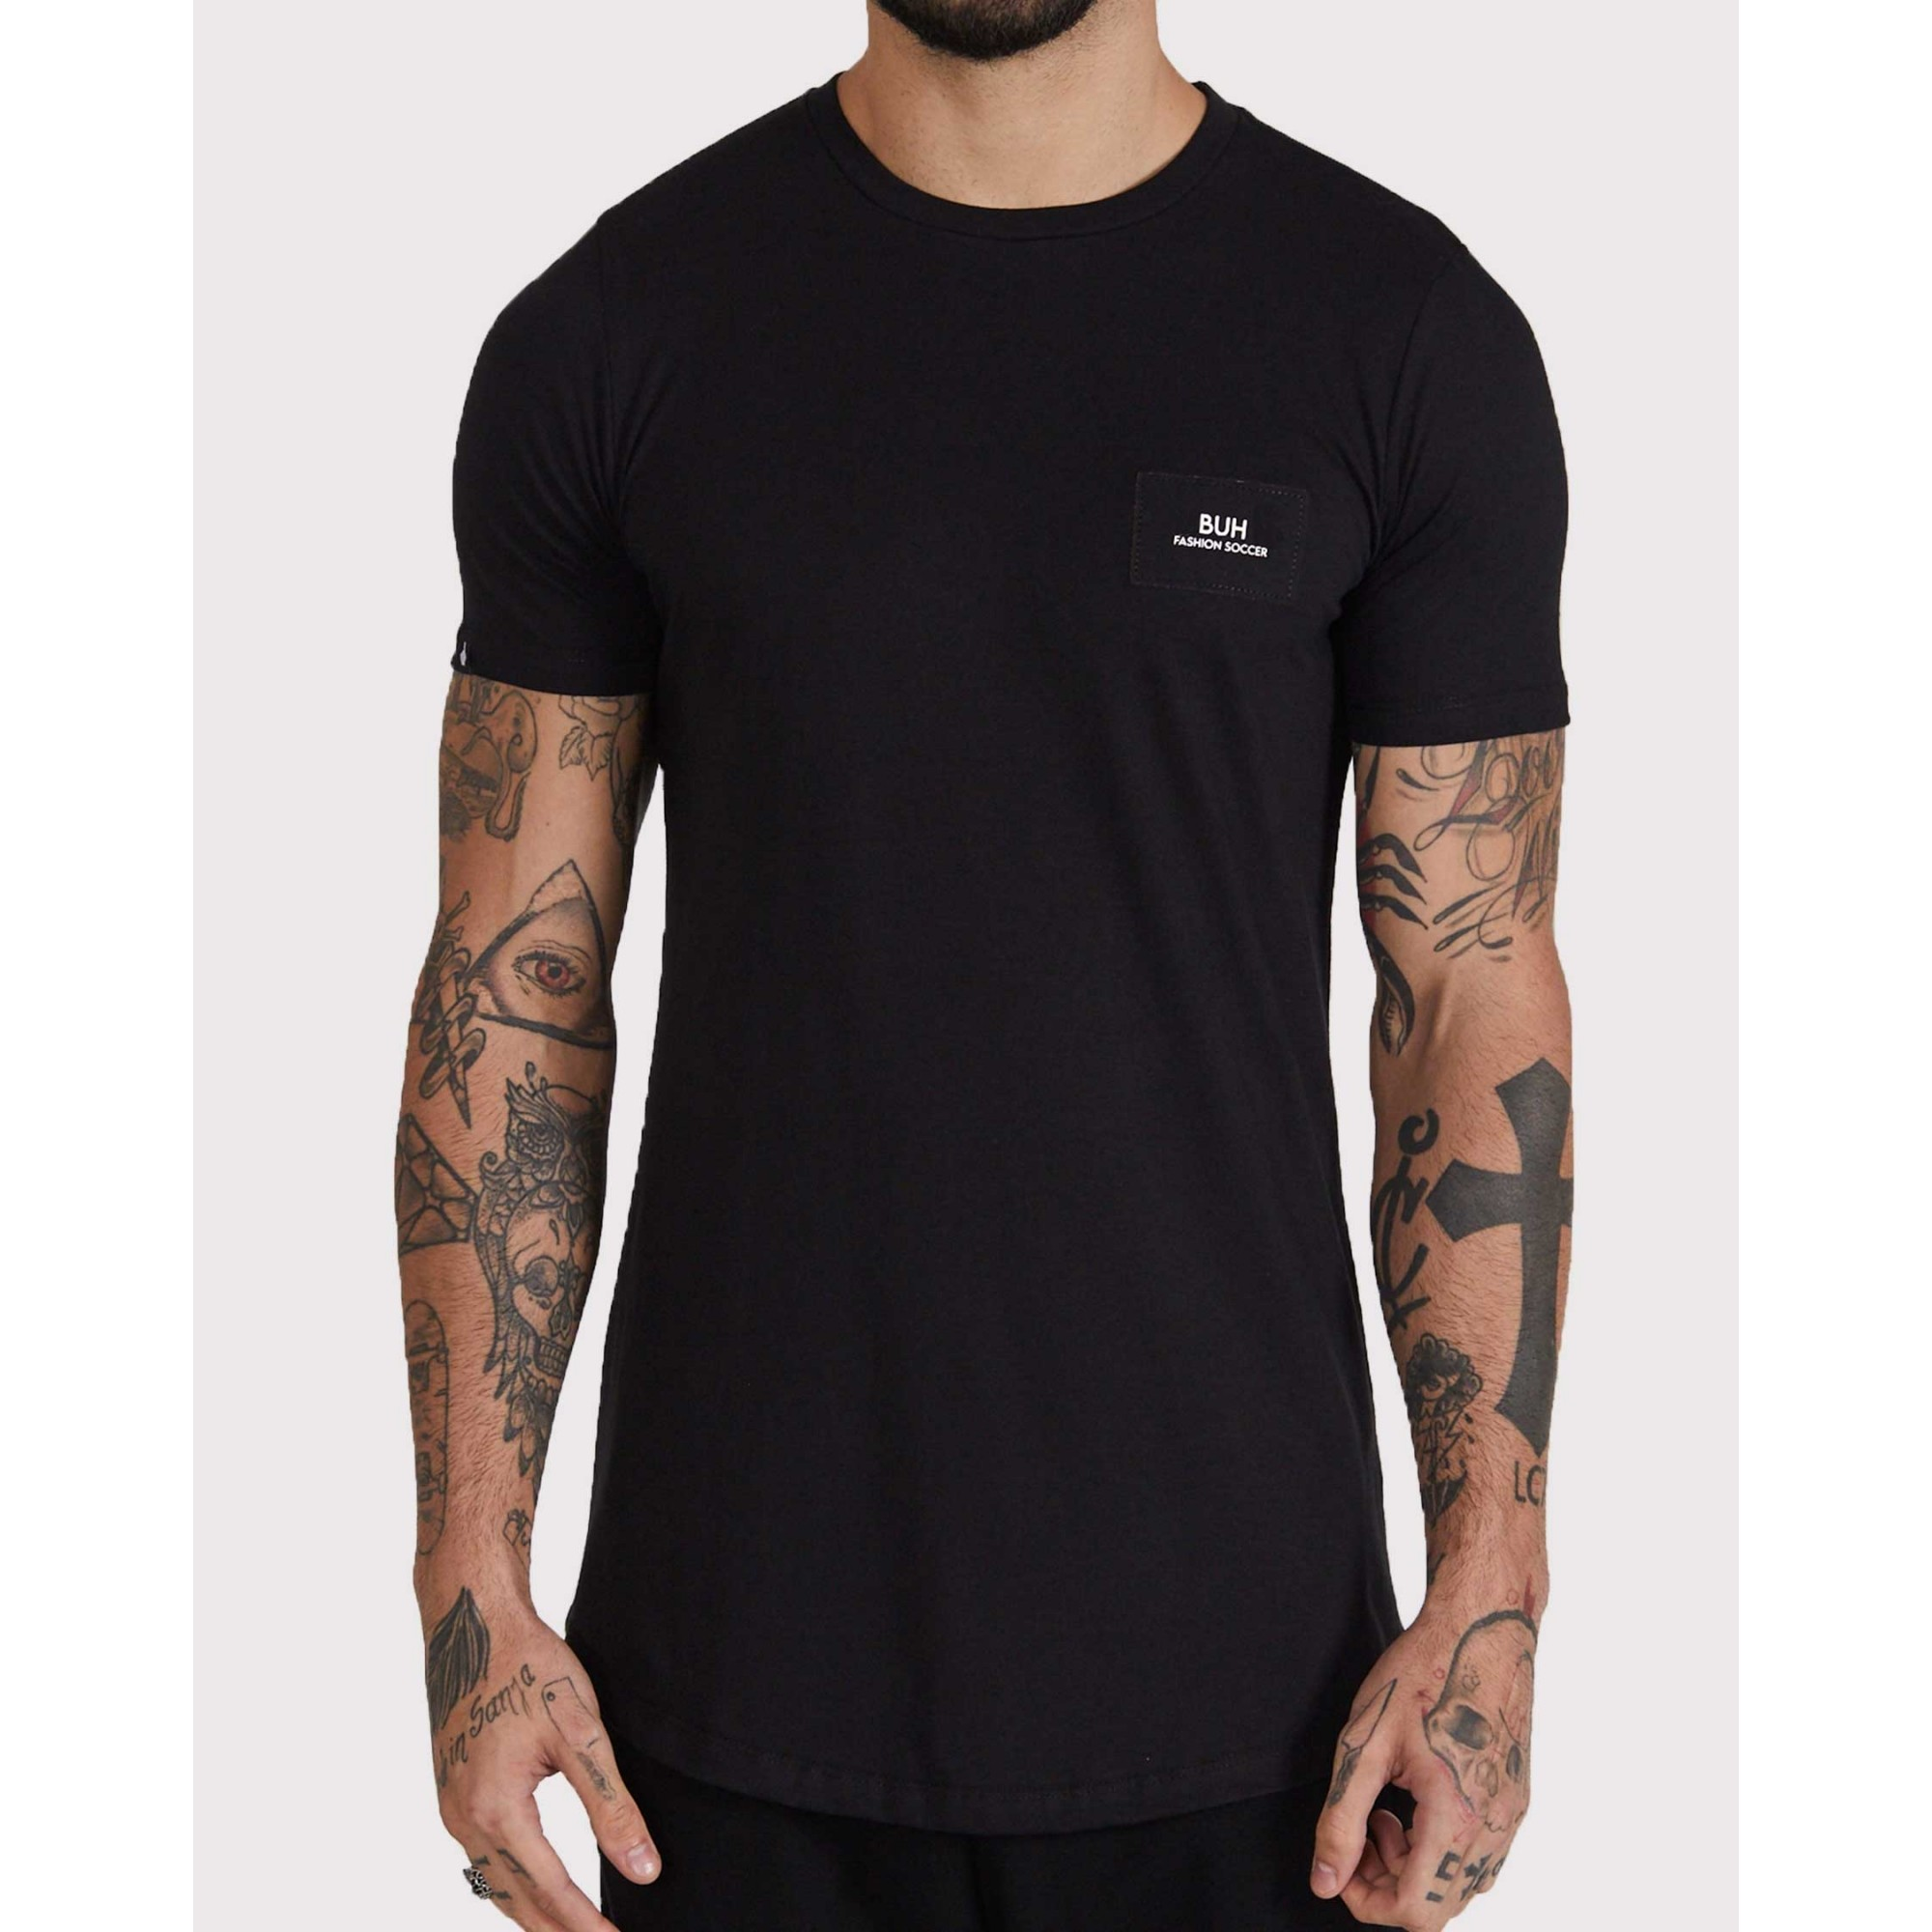 Camiseta Buh Costura Costas Black